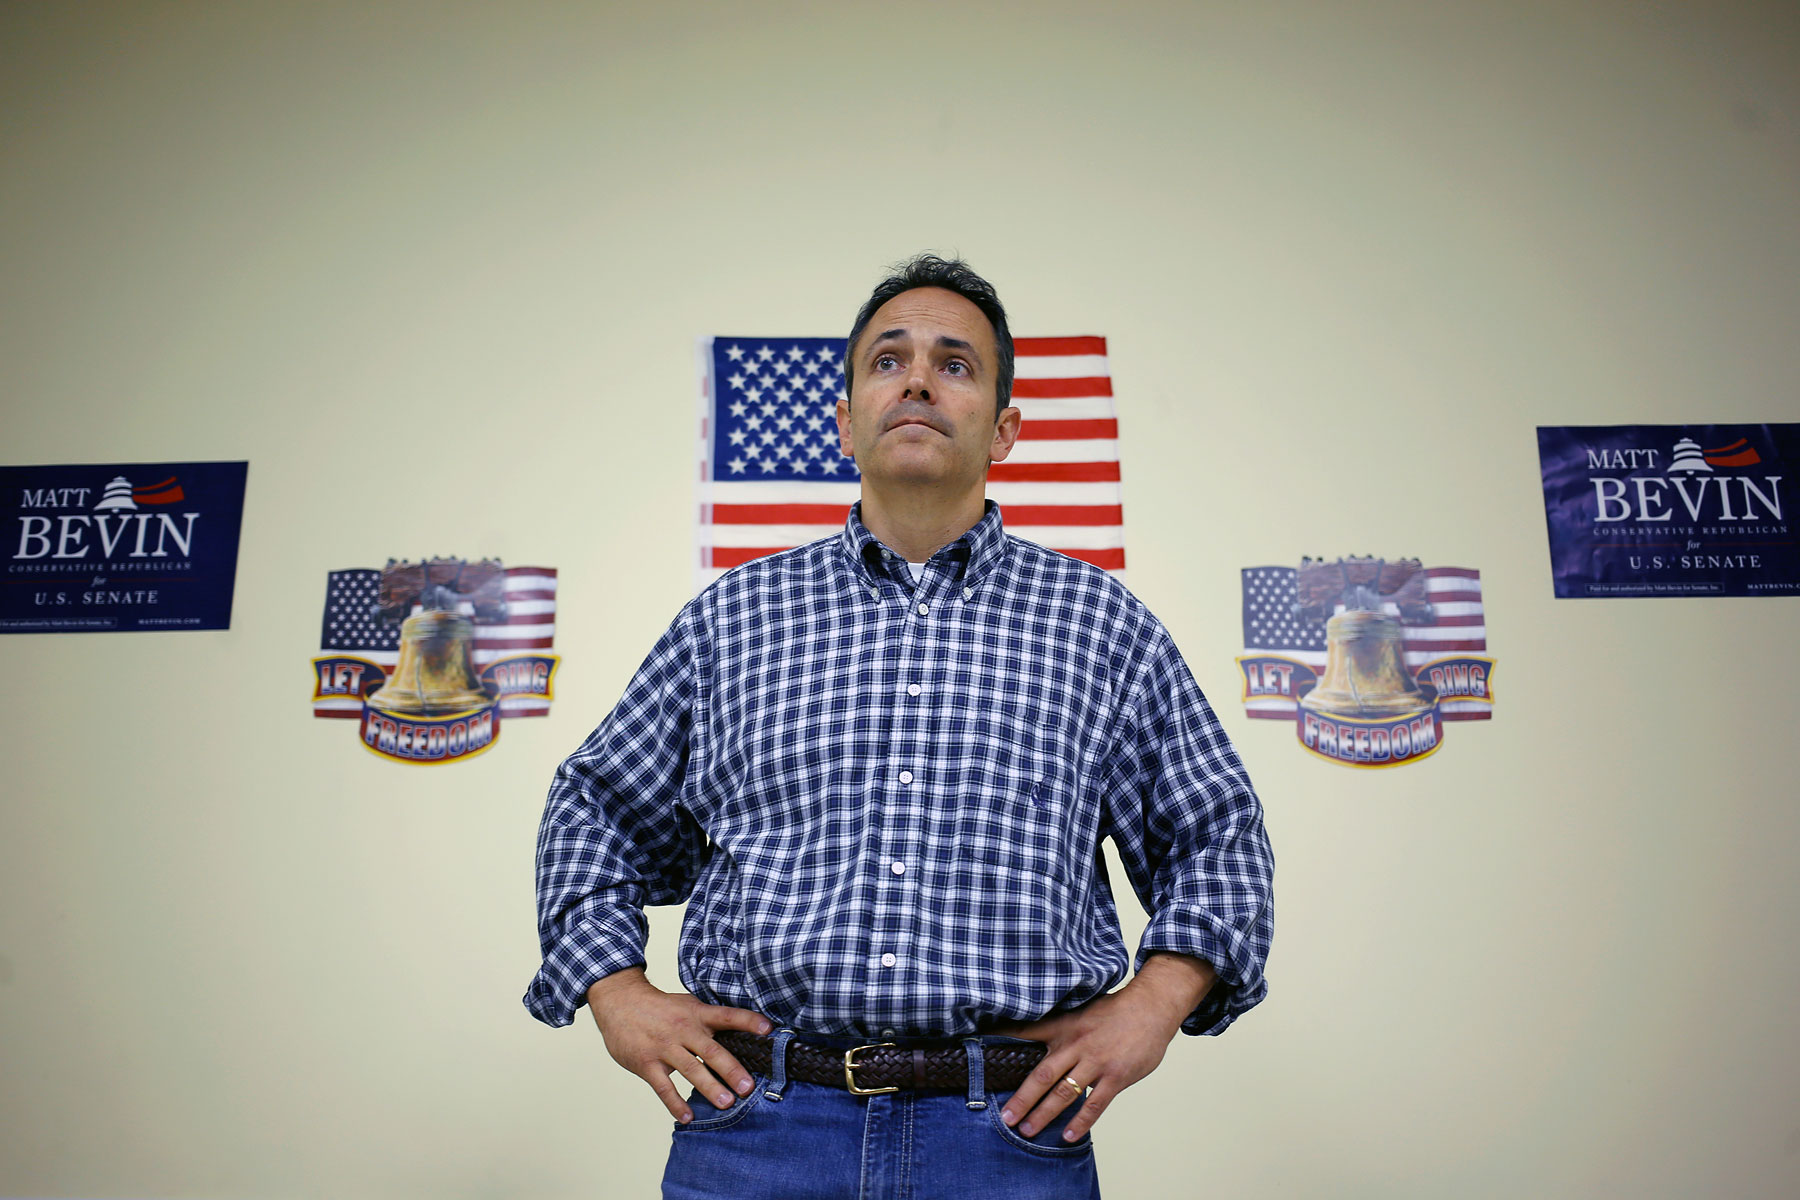 Louisville businessman Matt Bevin speaks during a meeting of the Spencer County Tea Party at the Kentucky Farm Bureau in Taylorsville, Ky., October 15, 2013.